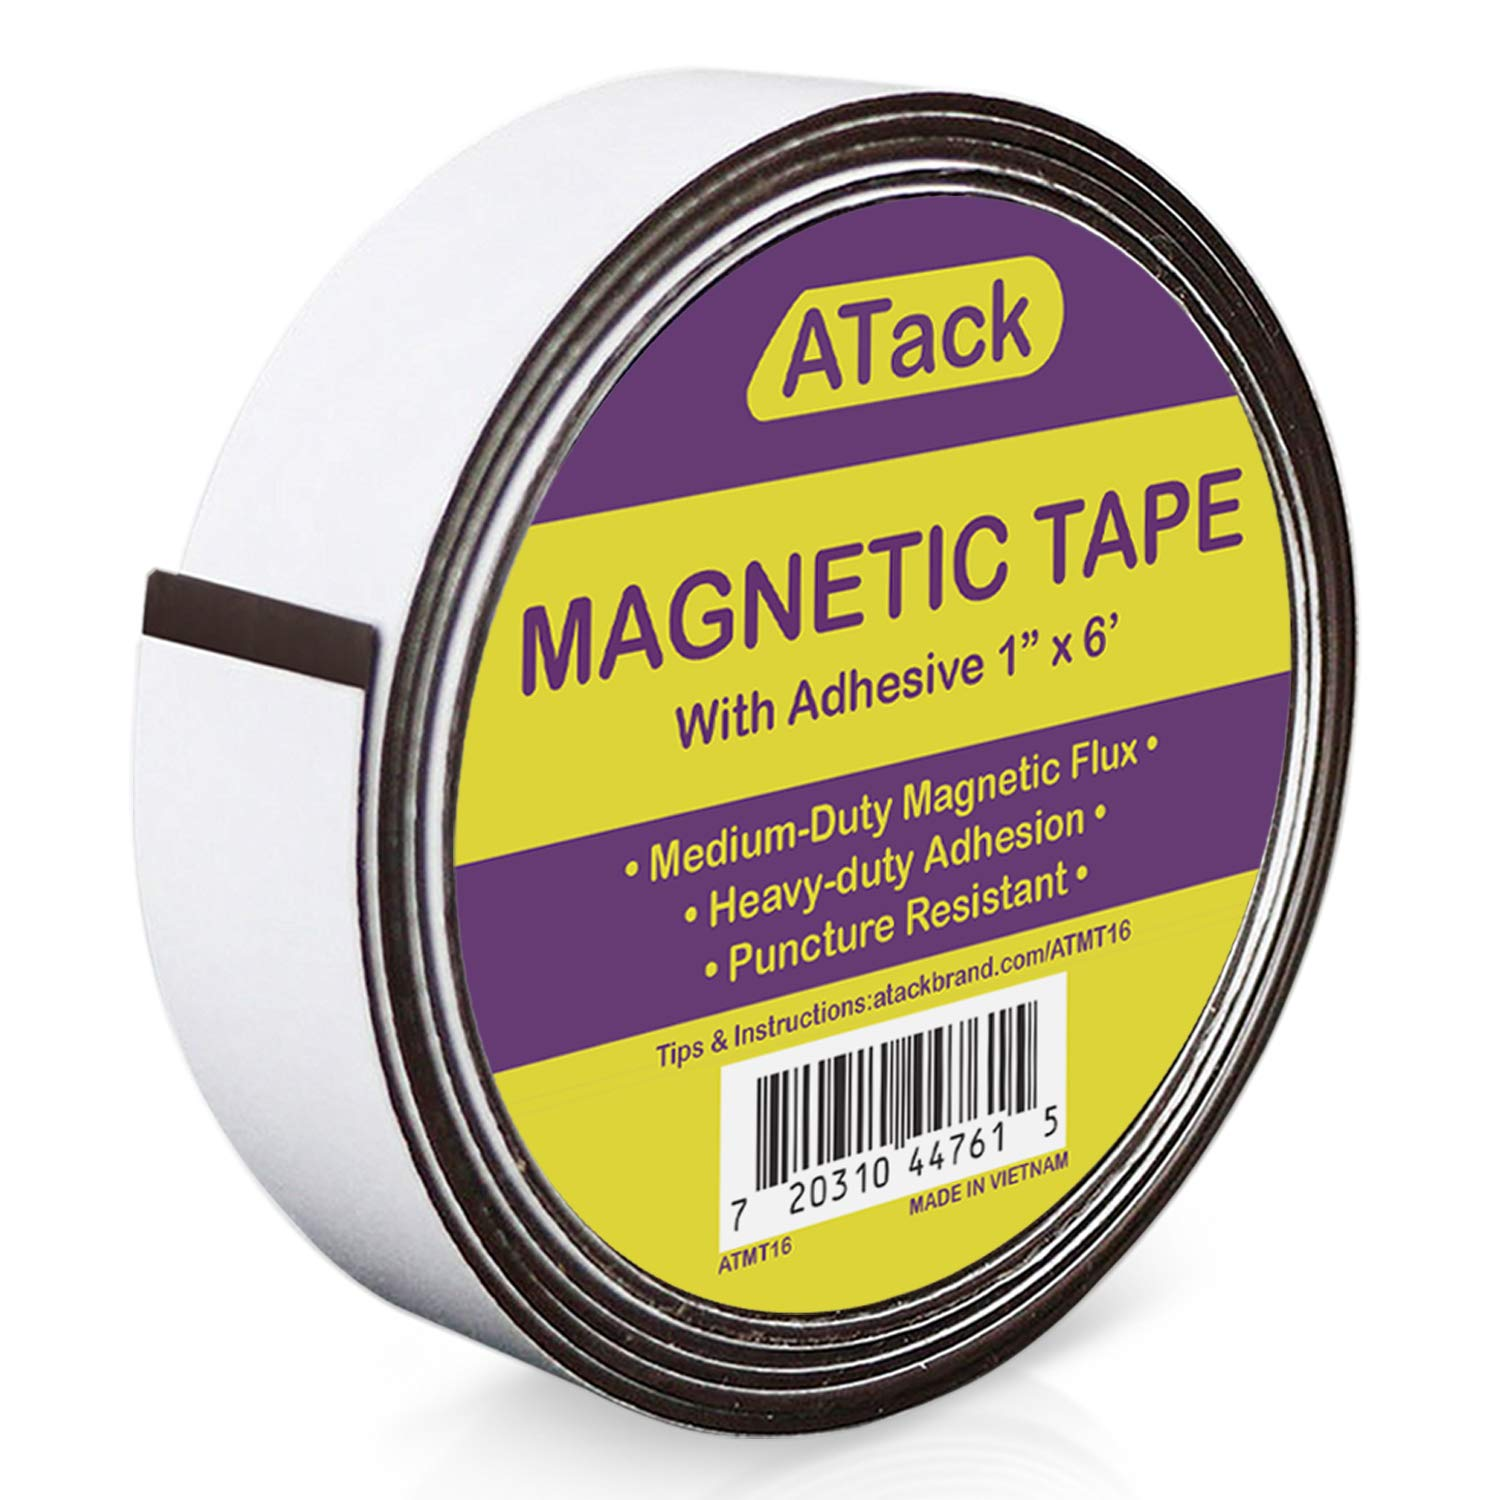 ATack Magnetic Tape Strip Roll, 1-Inch x 6-Foot, Self-Adhesive, Peel and Stick on Double-Sided Magnet Strips for Fridge, Crafts and DIY Projects